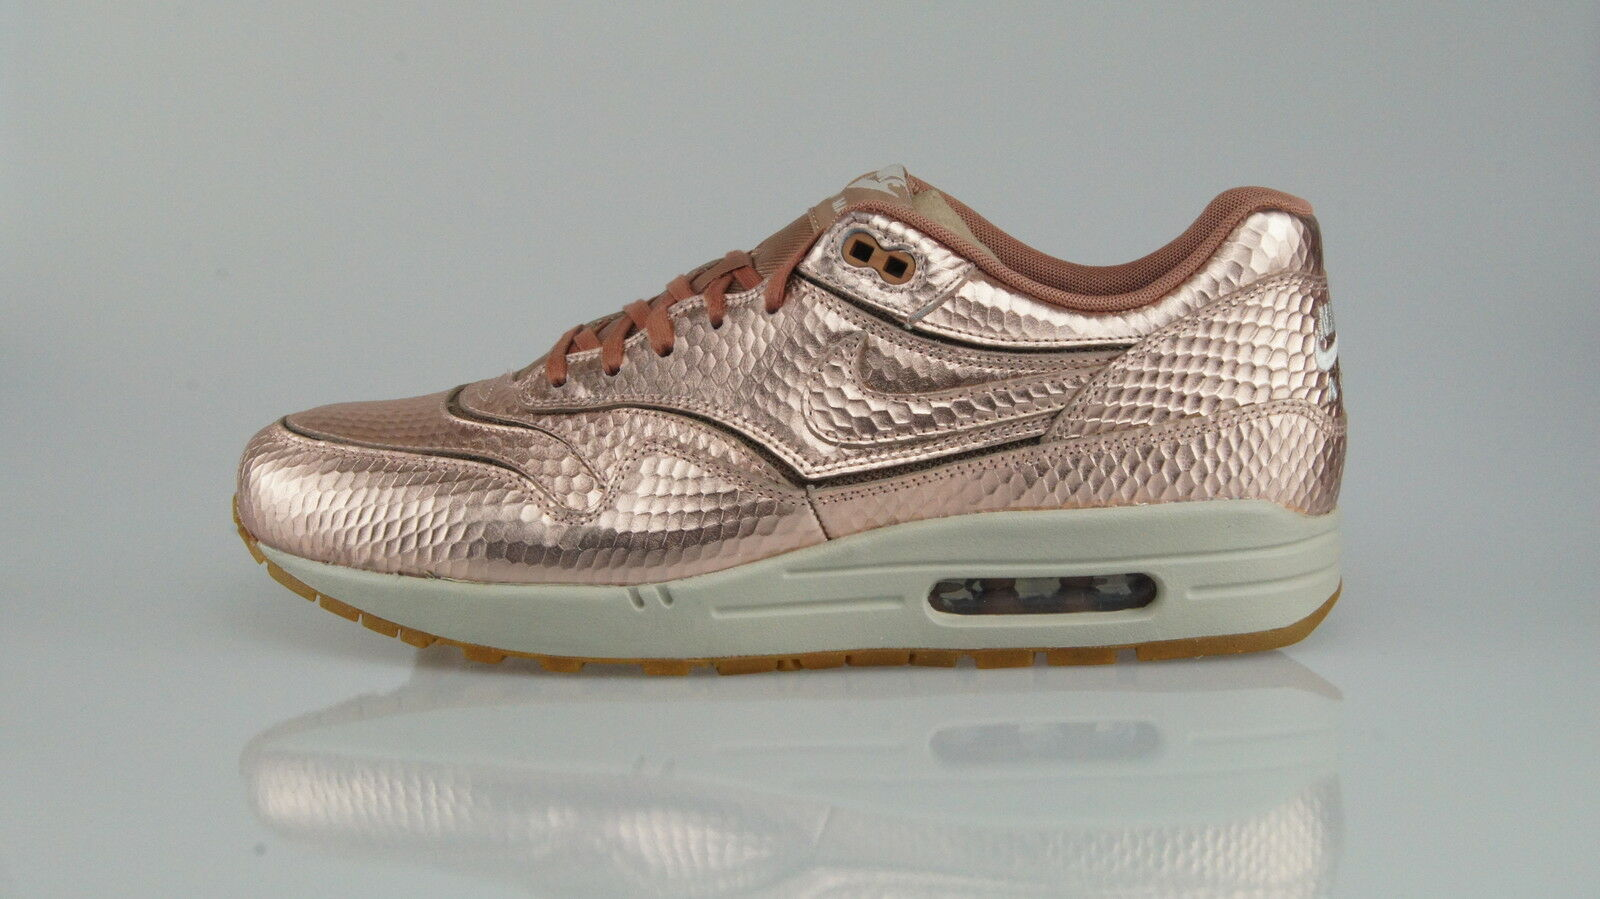 nike air max 1 coupé pmr taille 44 (10us) (10us) (10us) 342be4